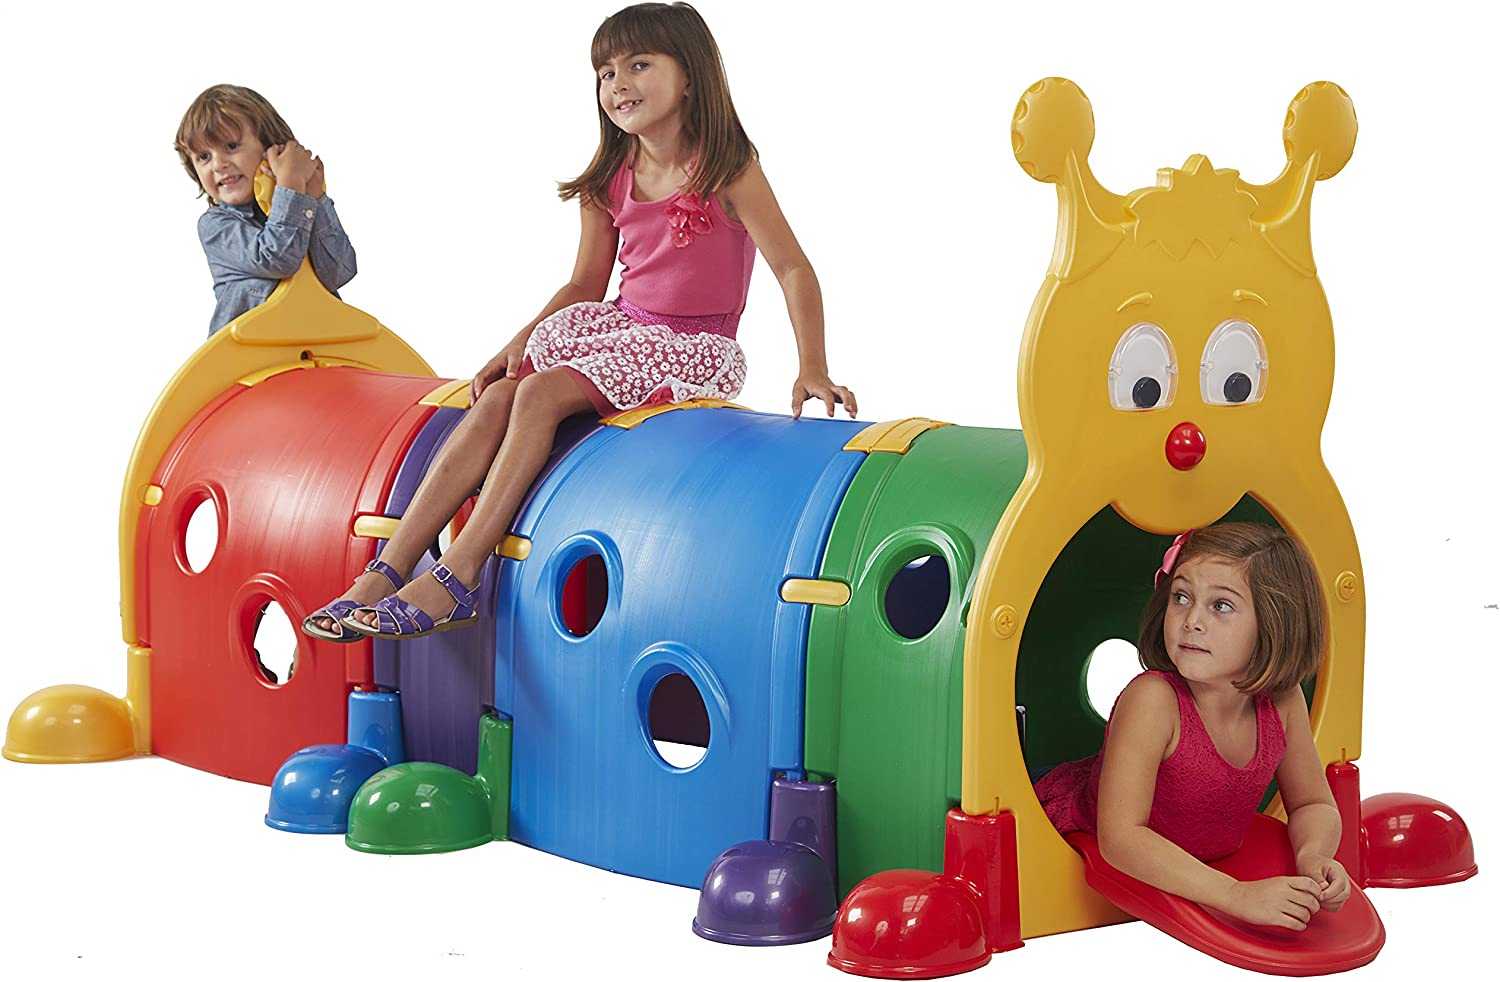 Top 10 Best Toddler Climbing Toys (2020 Reviews & Buying Guide) 1